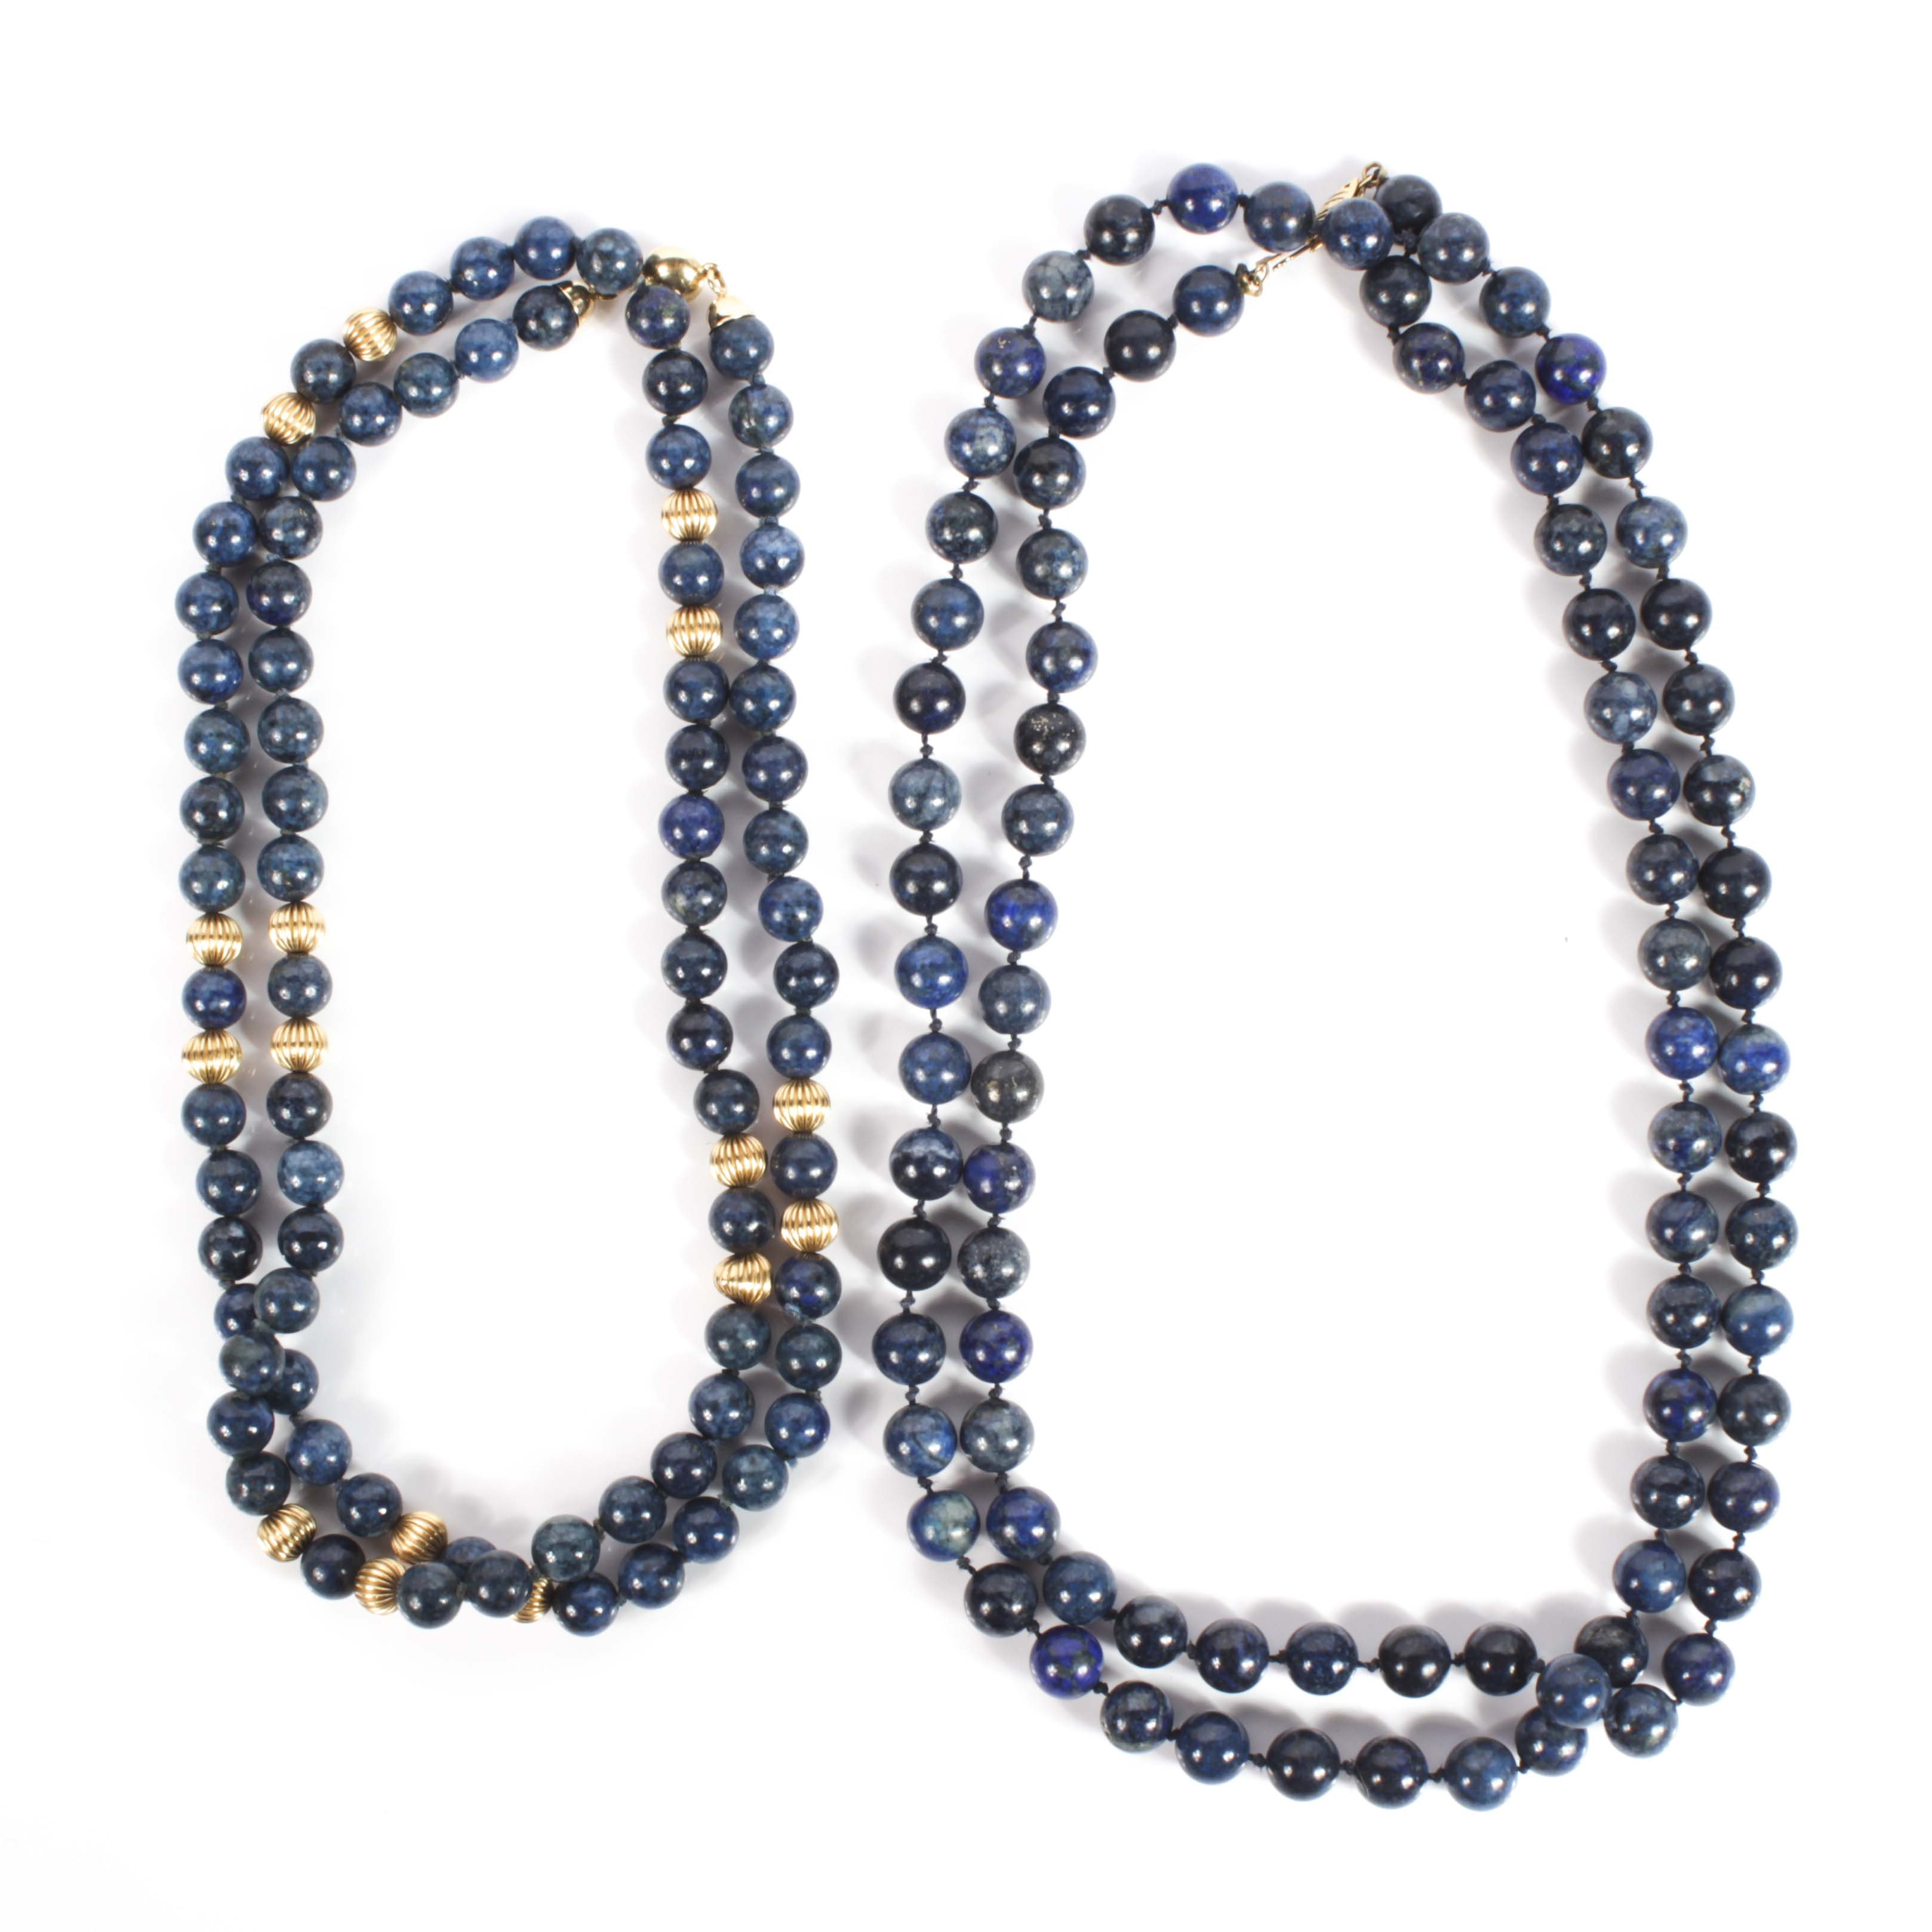 14K Yellow Gold and Lapis Lazuli Bead Strand Necklaces